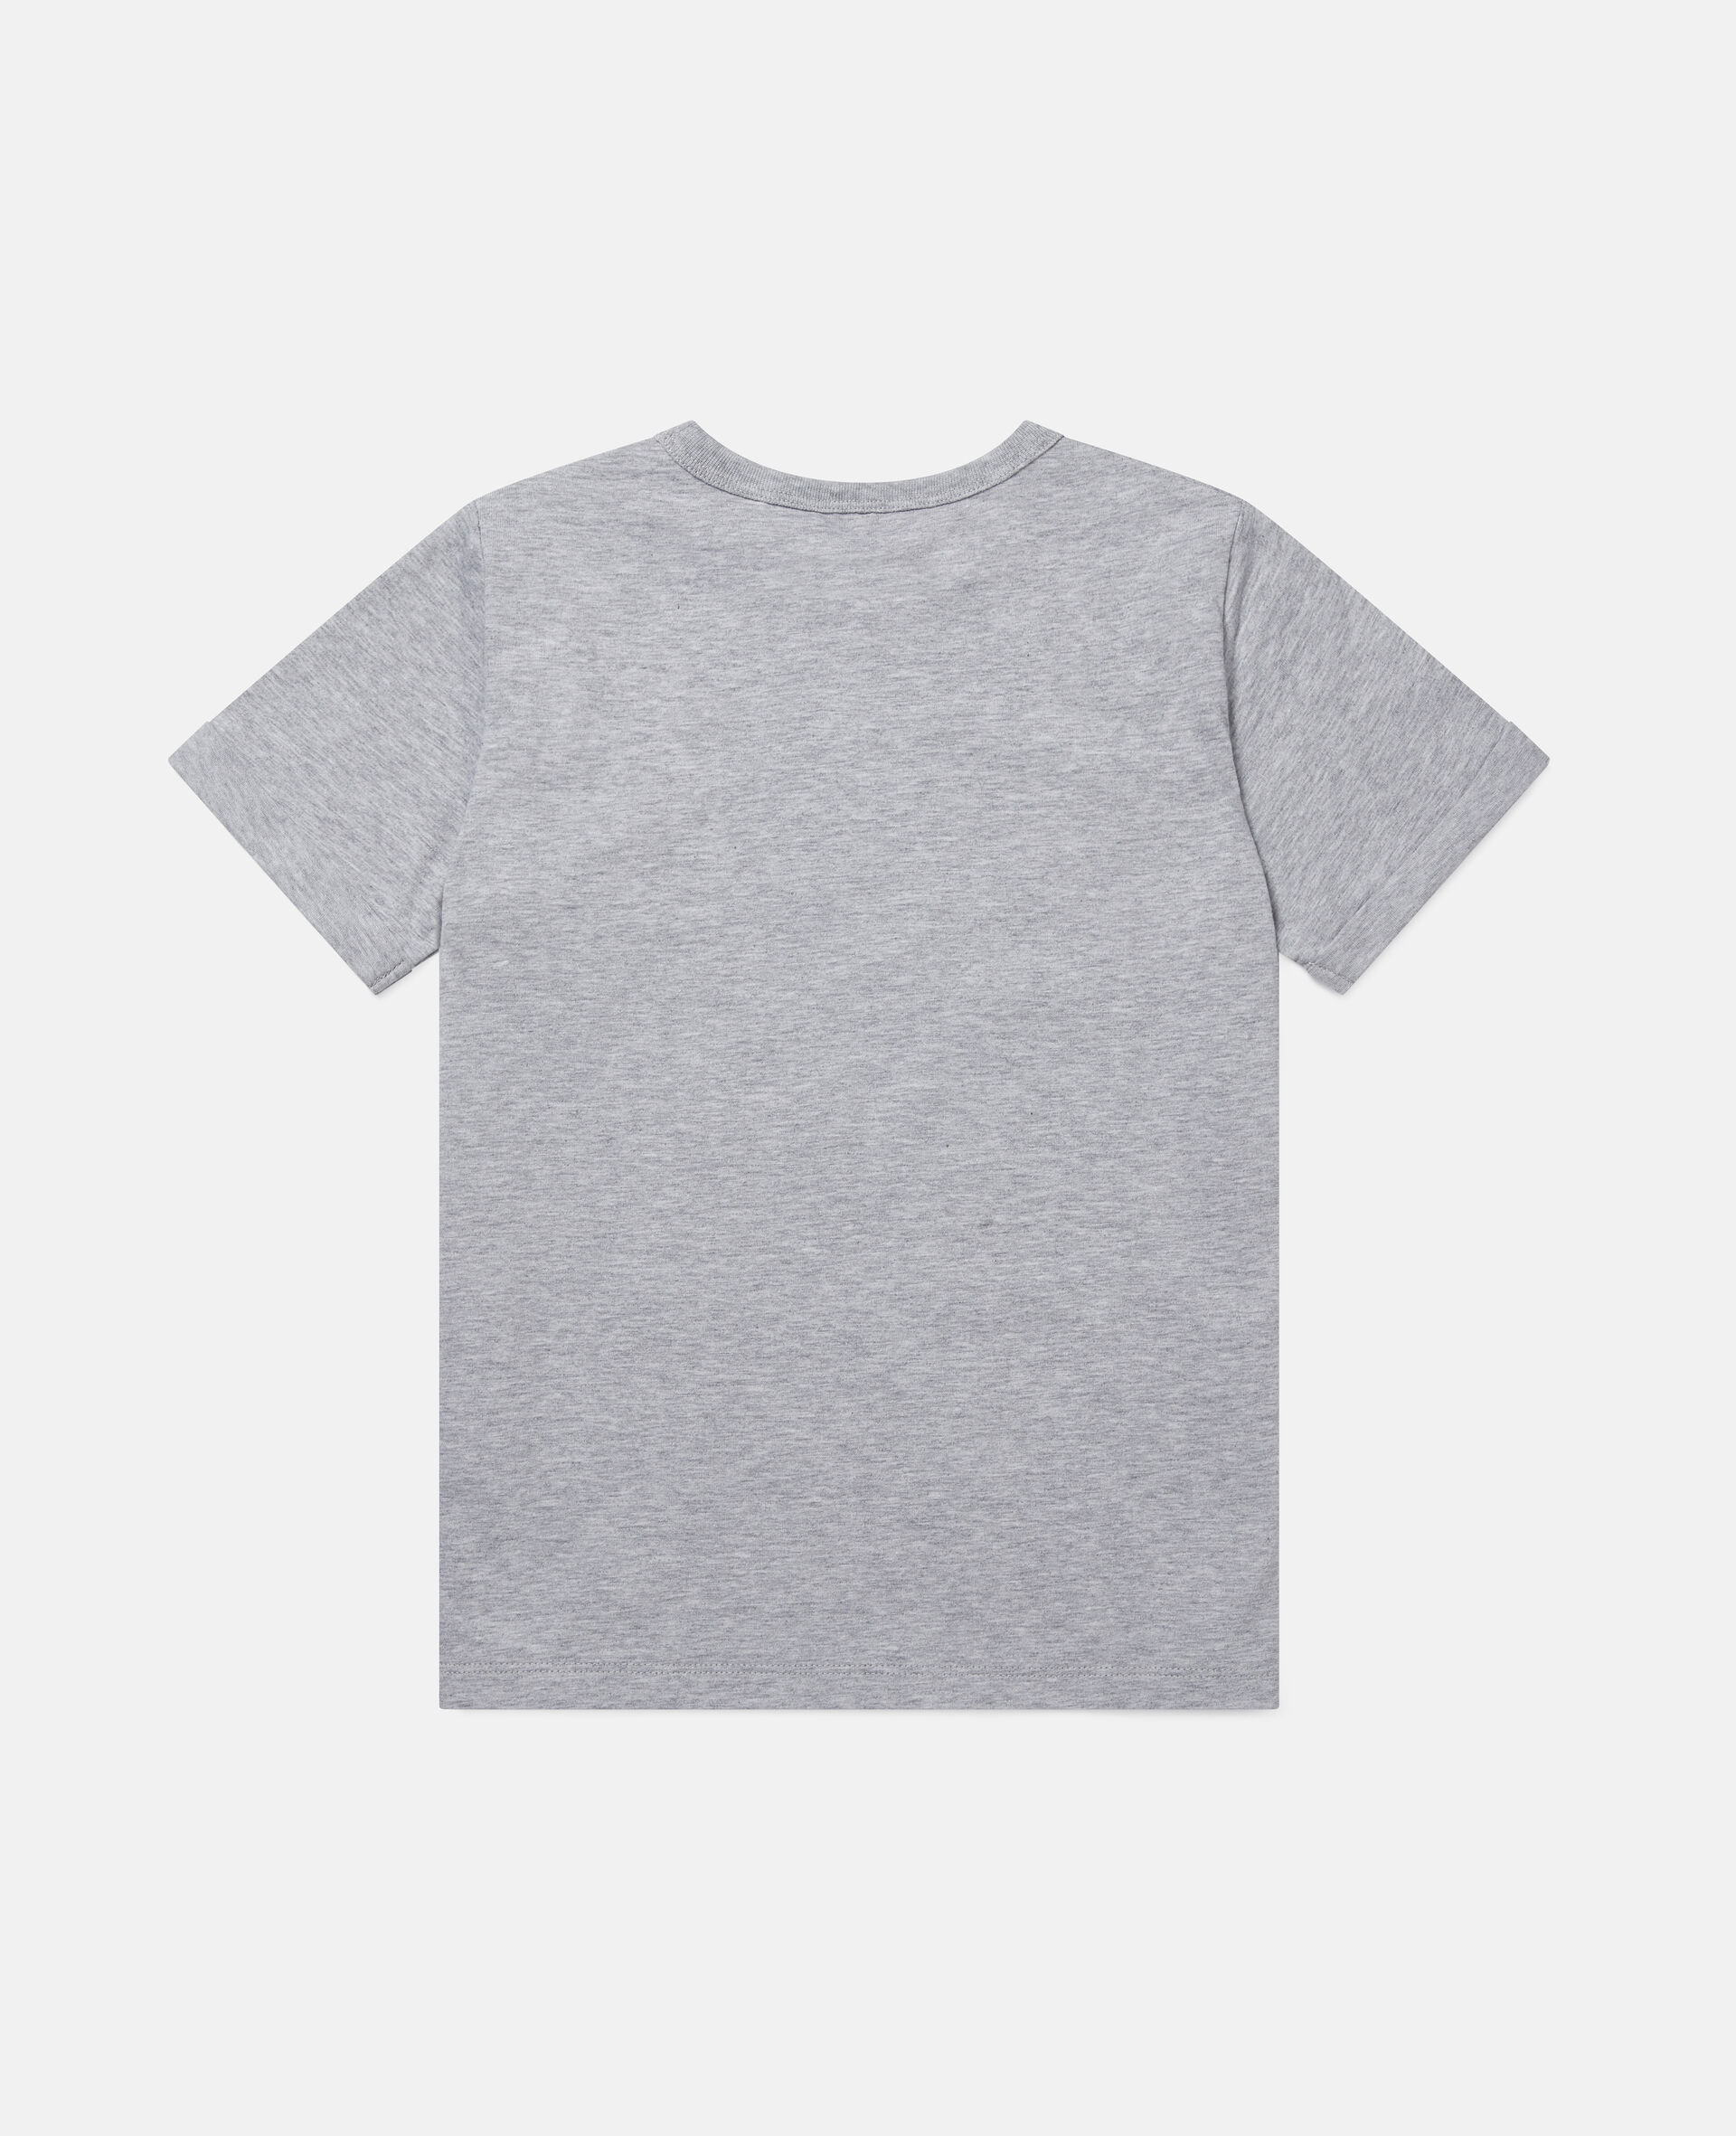 Daisy Heart Cotton T-Shirt-Grey-large image number 3